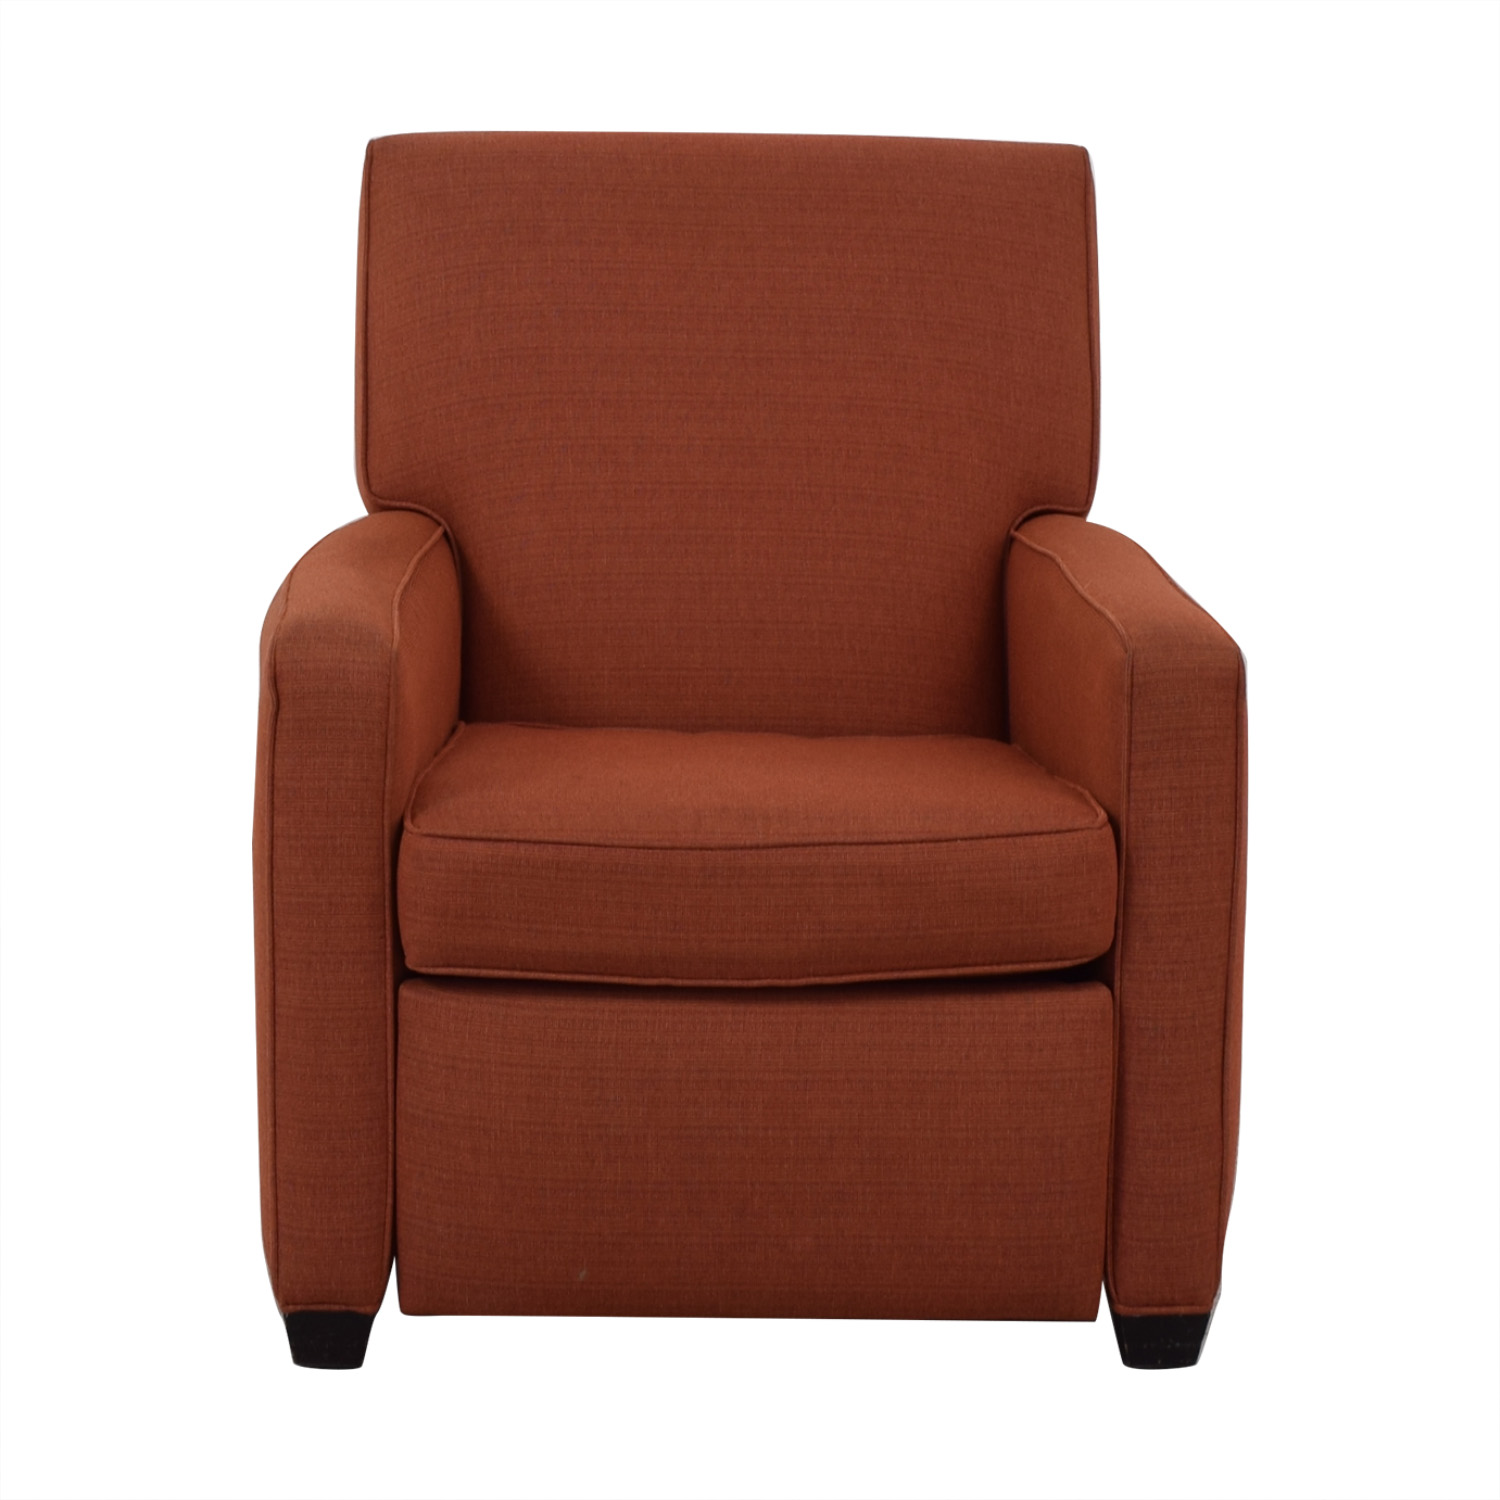 Mitchell Gold + Bob Williams Mitchell Gold + Bob Williams Recliner Chair price